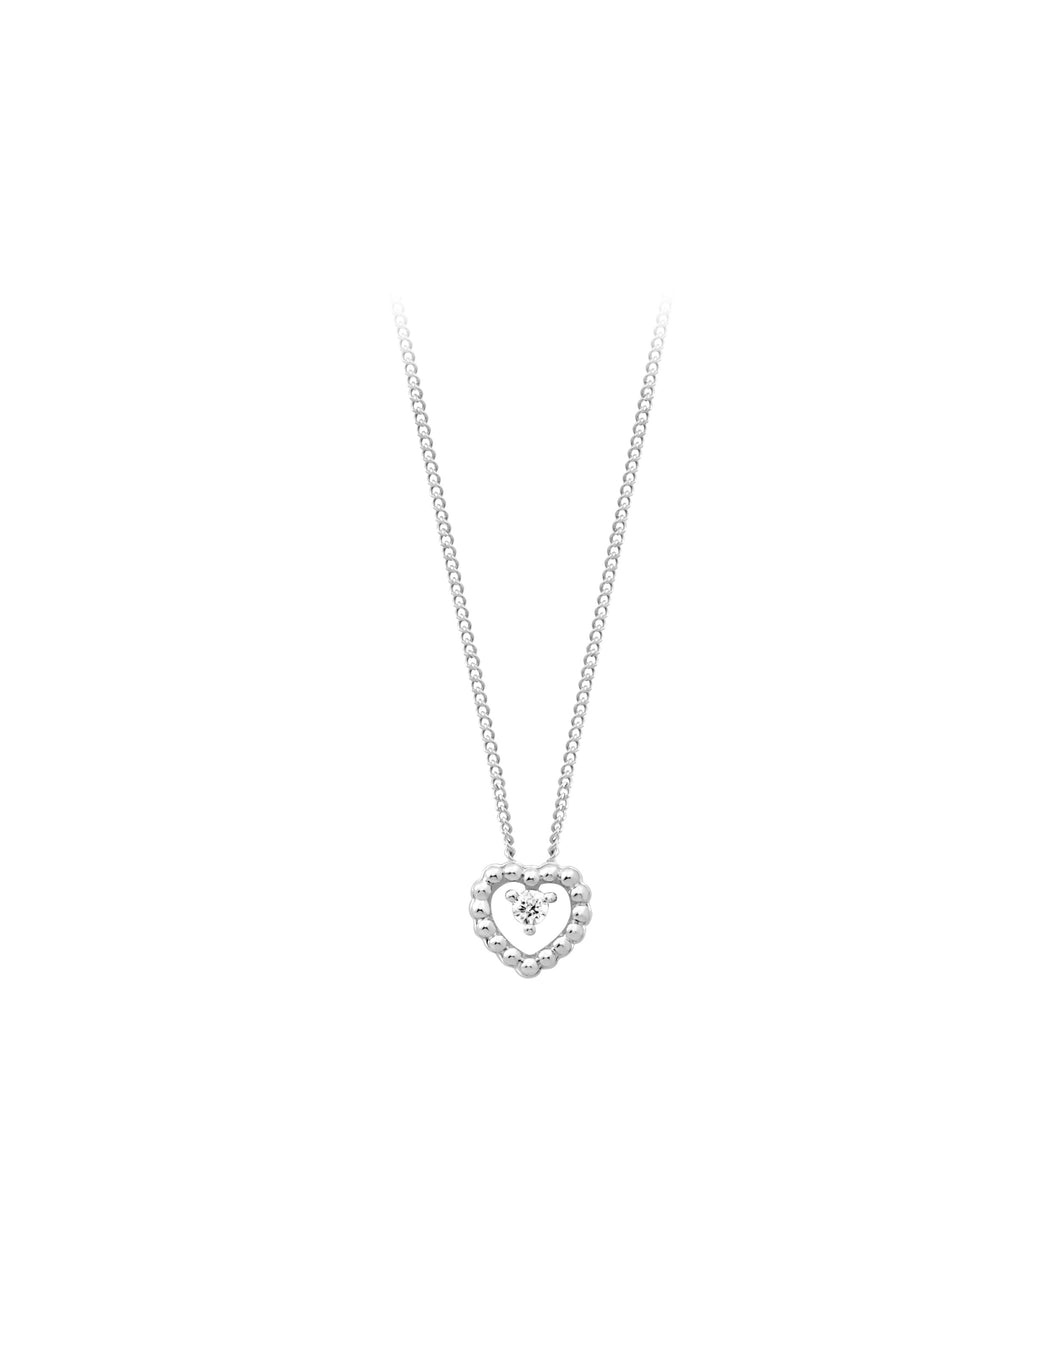 Diamond Beaded Gold Heart Pendant  10k White Gold  0.03ct